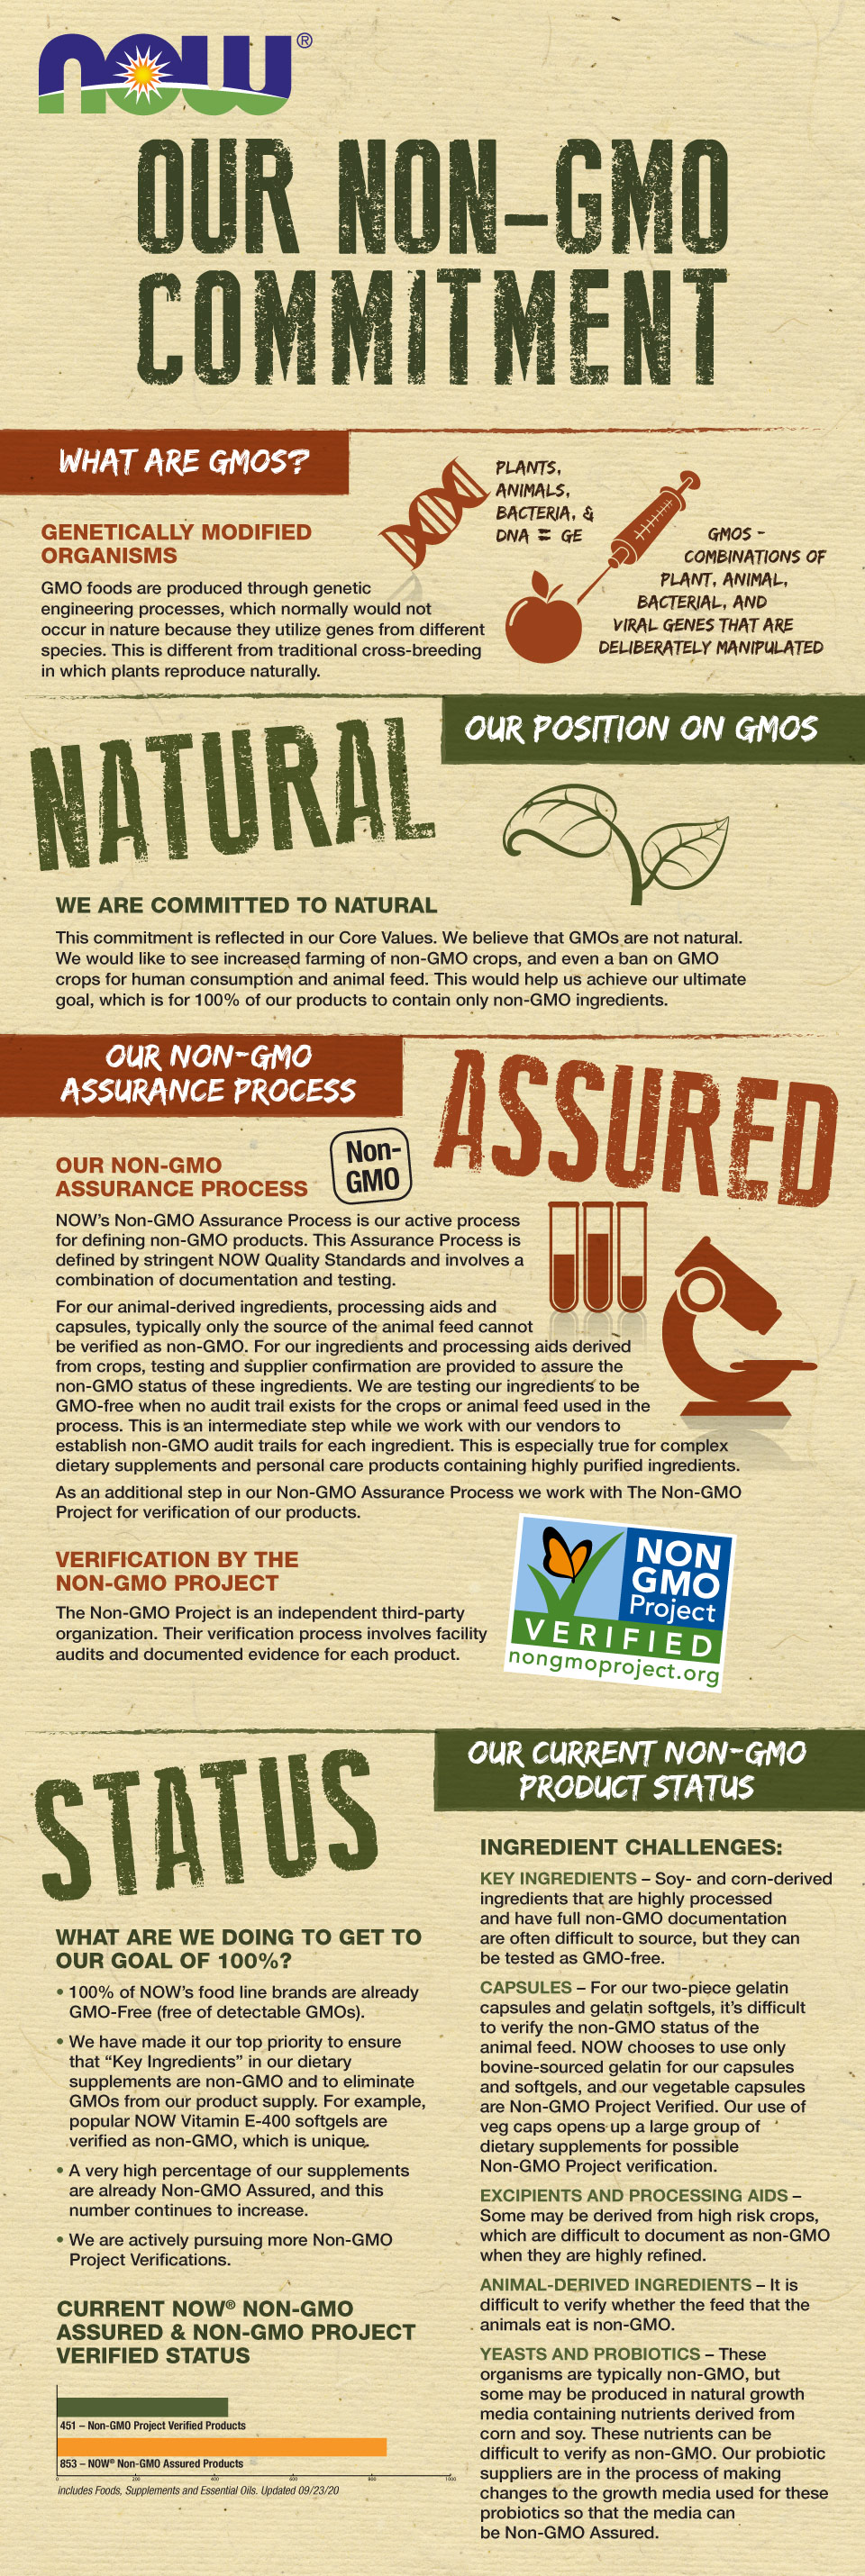 our non-gmo commitment infographic